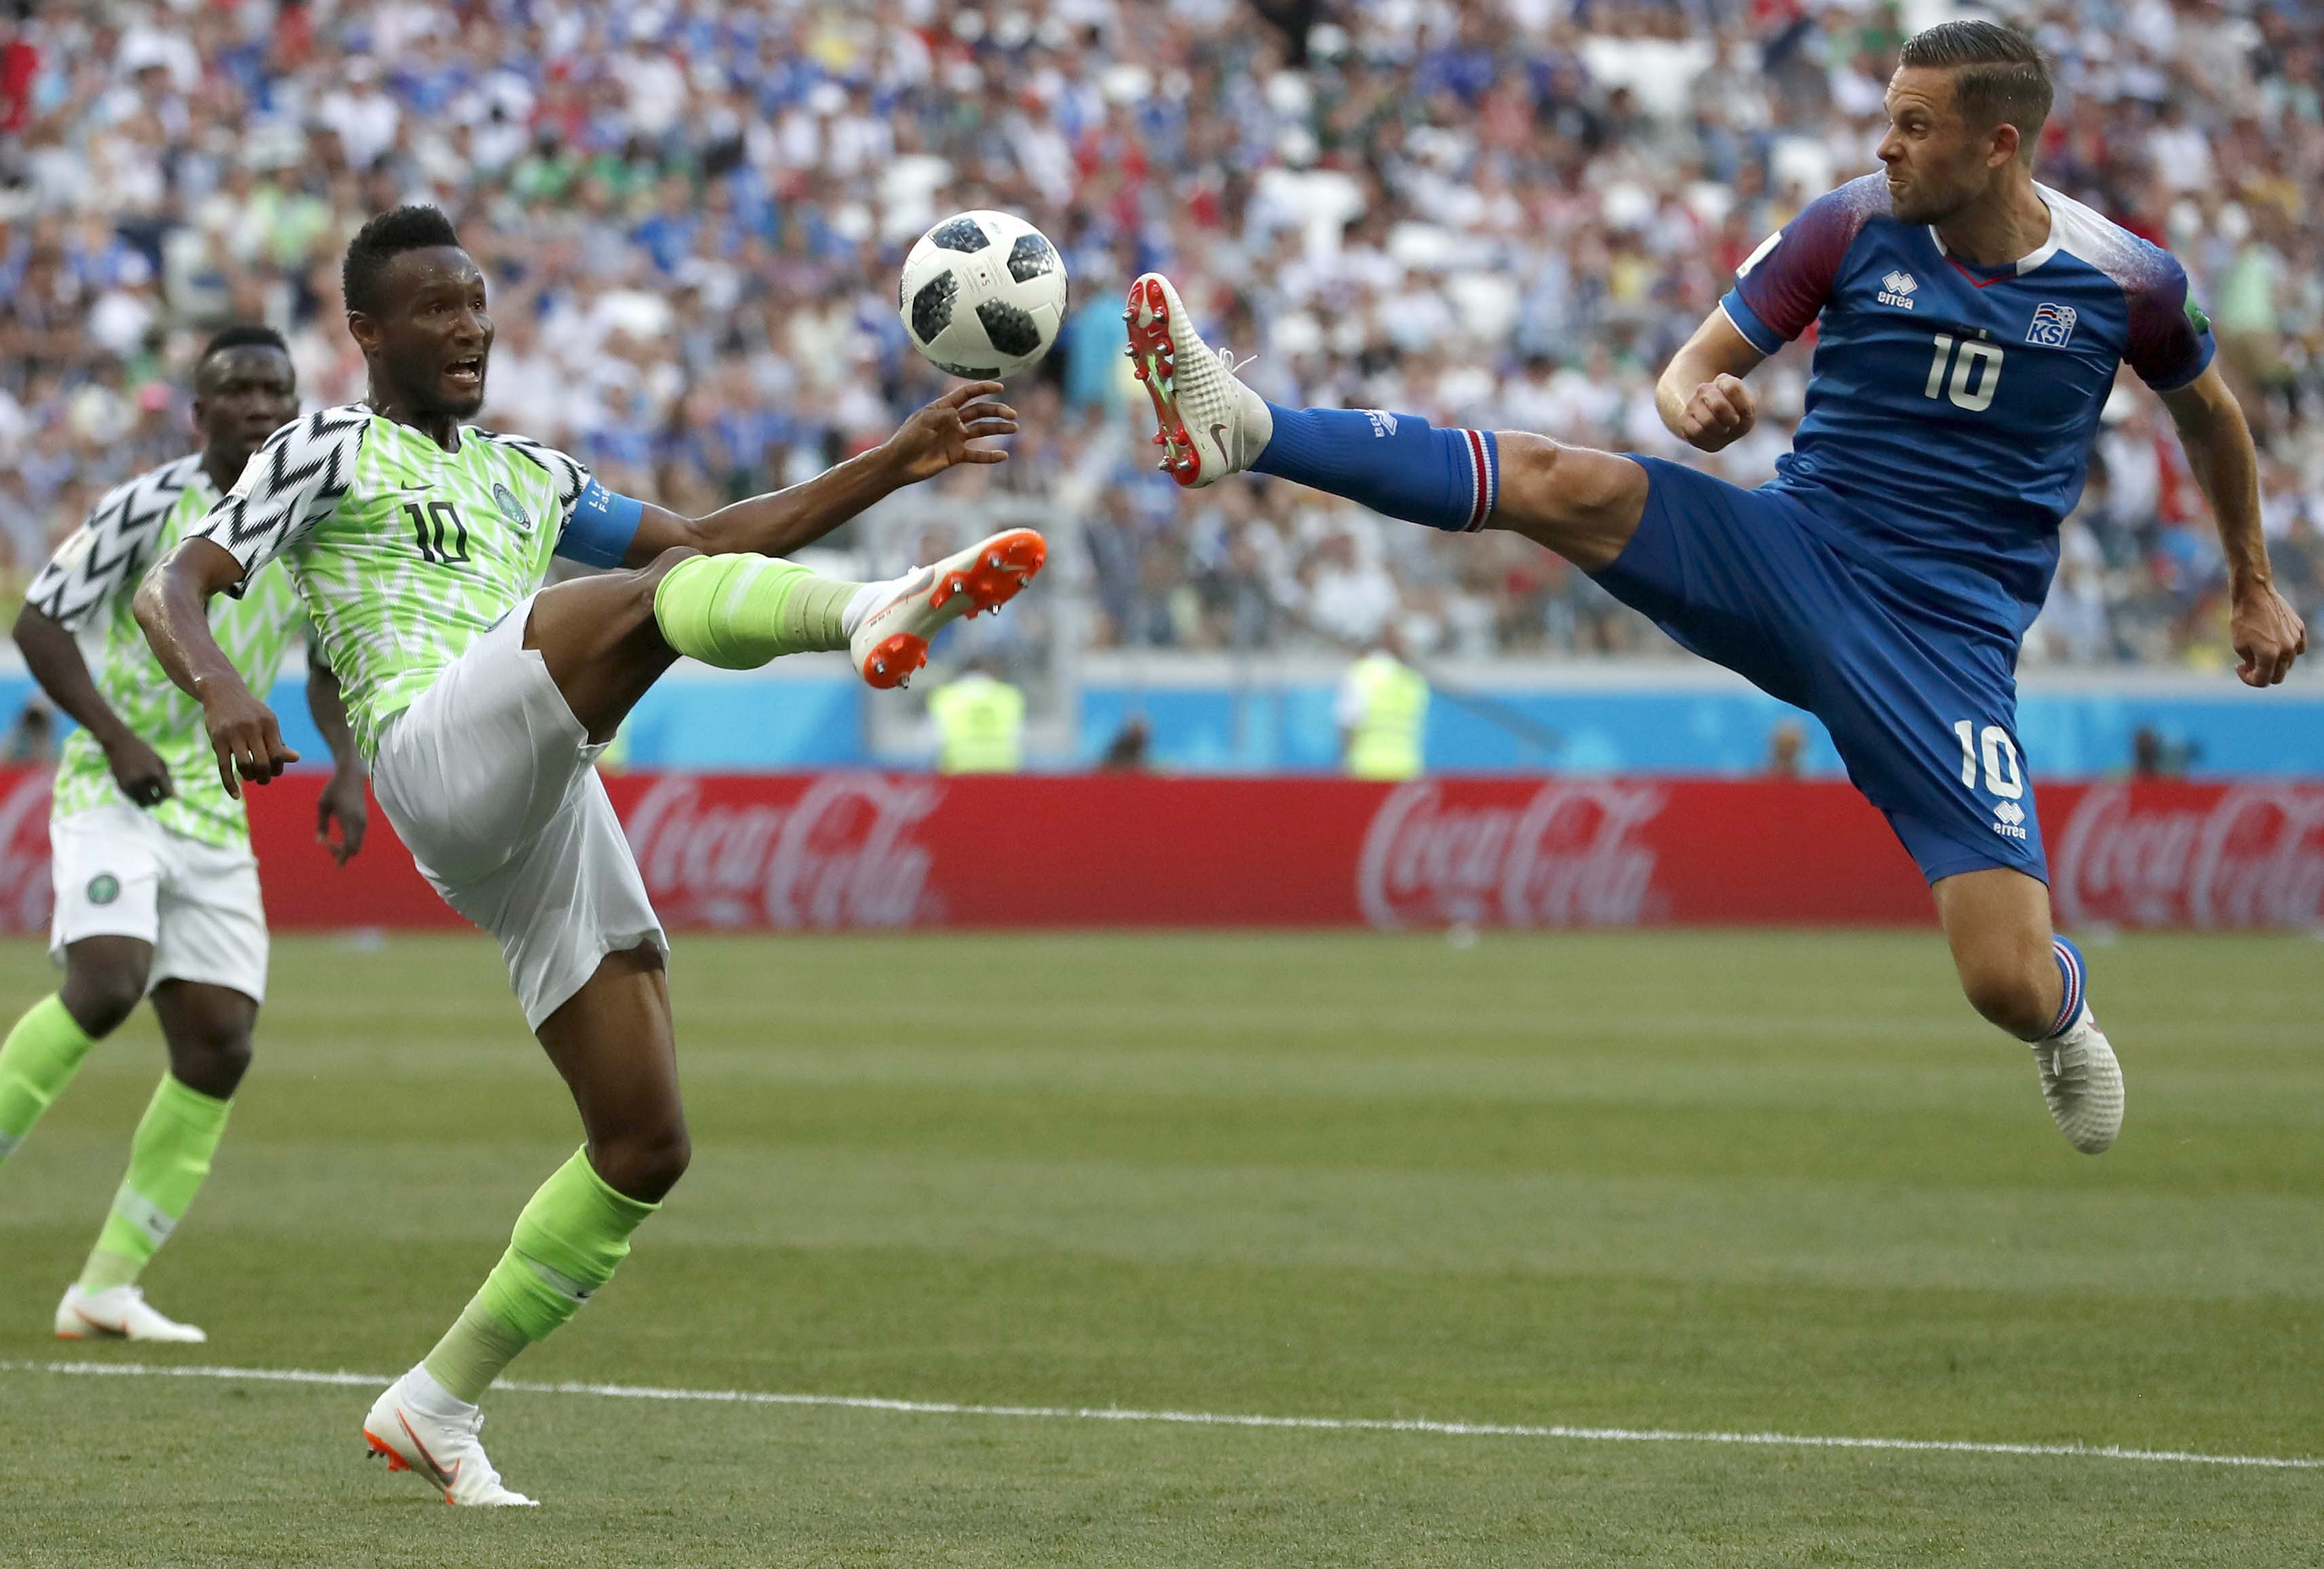 Nigeria`s John Obi Mikel (left) and Iceland`s Gylfi Sigurdsson compete for the ball during the group D match between Nigeria and Iceland at the 2018 soccer World Cup at the Volgograd Arena in Volgograd, Russia on Friday.